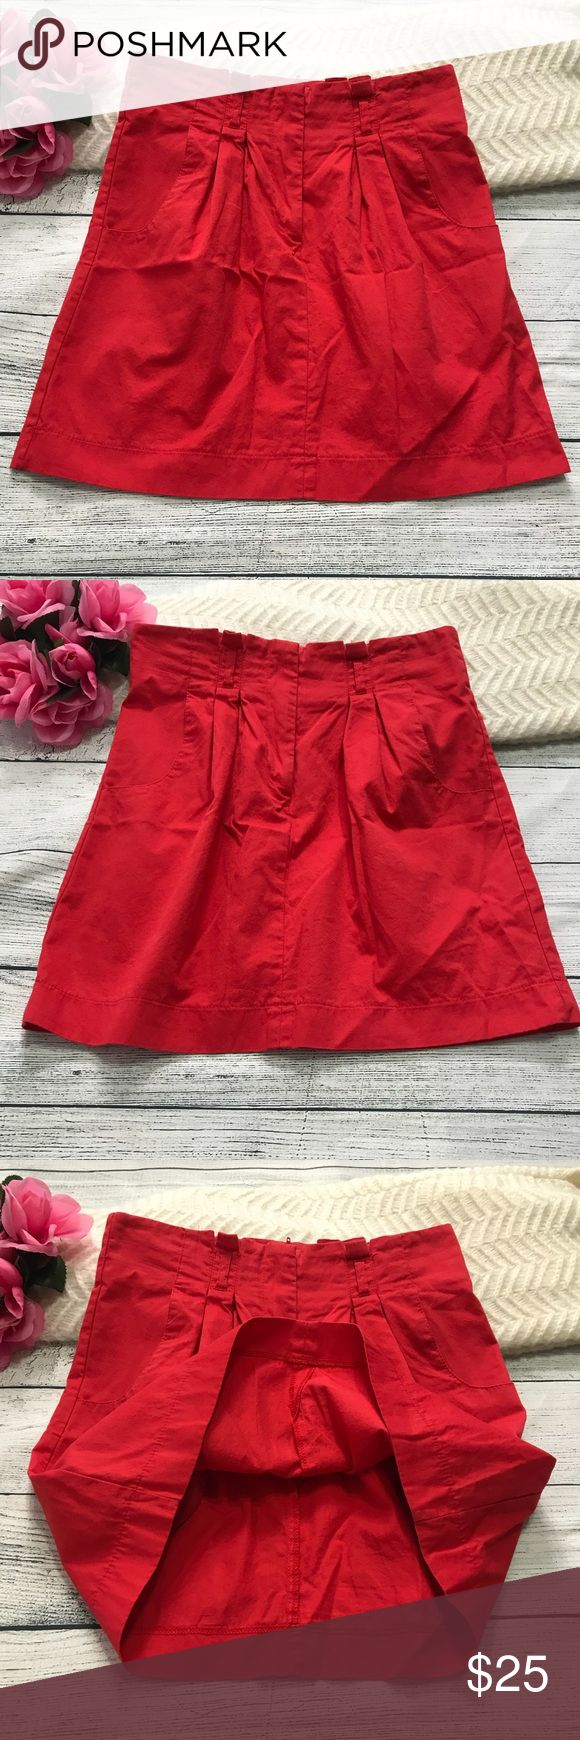 """Topshop Pleated Red Orange Mini Skirt Sz6 100% Cot Topshop Pleated Red Orange Mini Skirt Sz6  In great condition; No damage, holes, rips or stains;  Flat Measurements  Waist 14"""" Length 16""""  100% cotton Topshop Skirts Mini"""